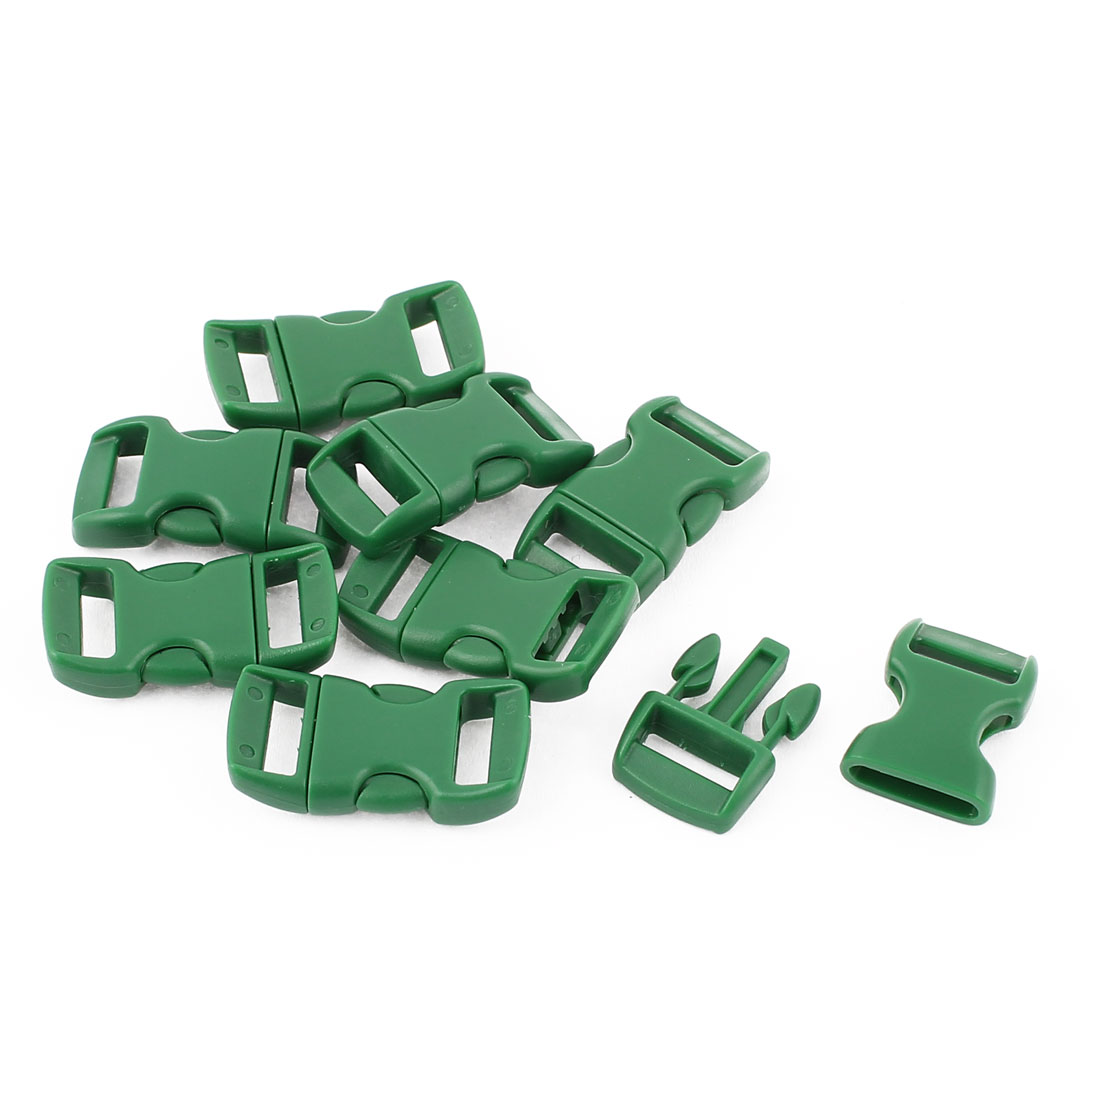 8 Pcs 11mm Width Green Plastic Backpack Rucksack Quick Release Buckle Clip